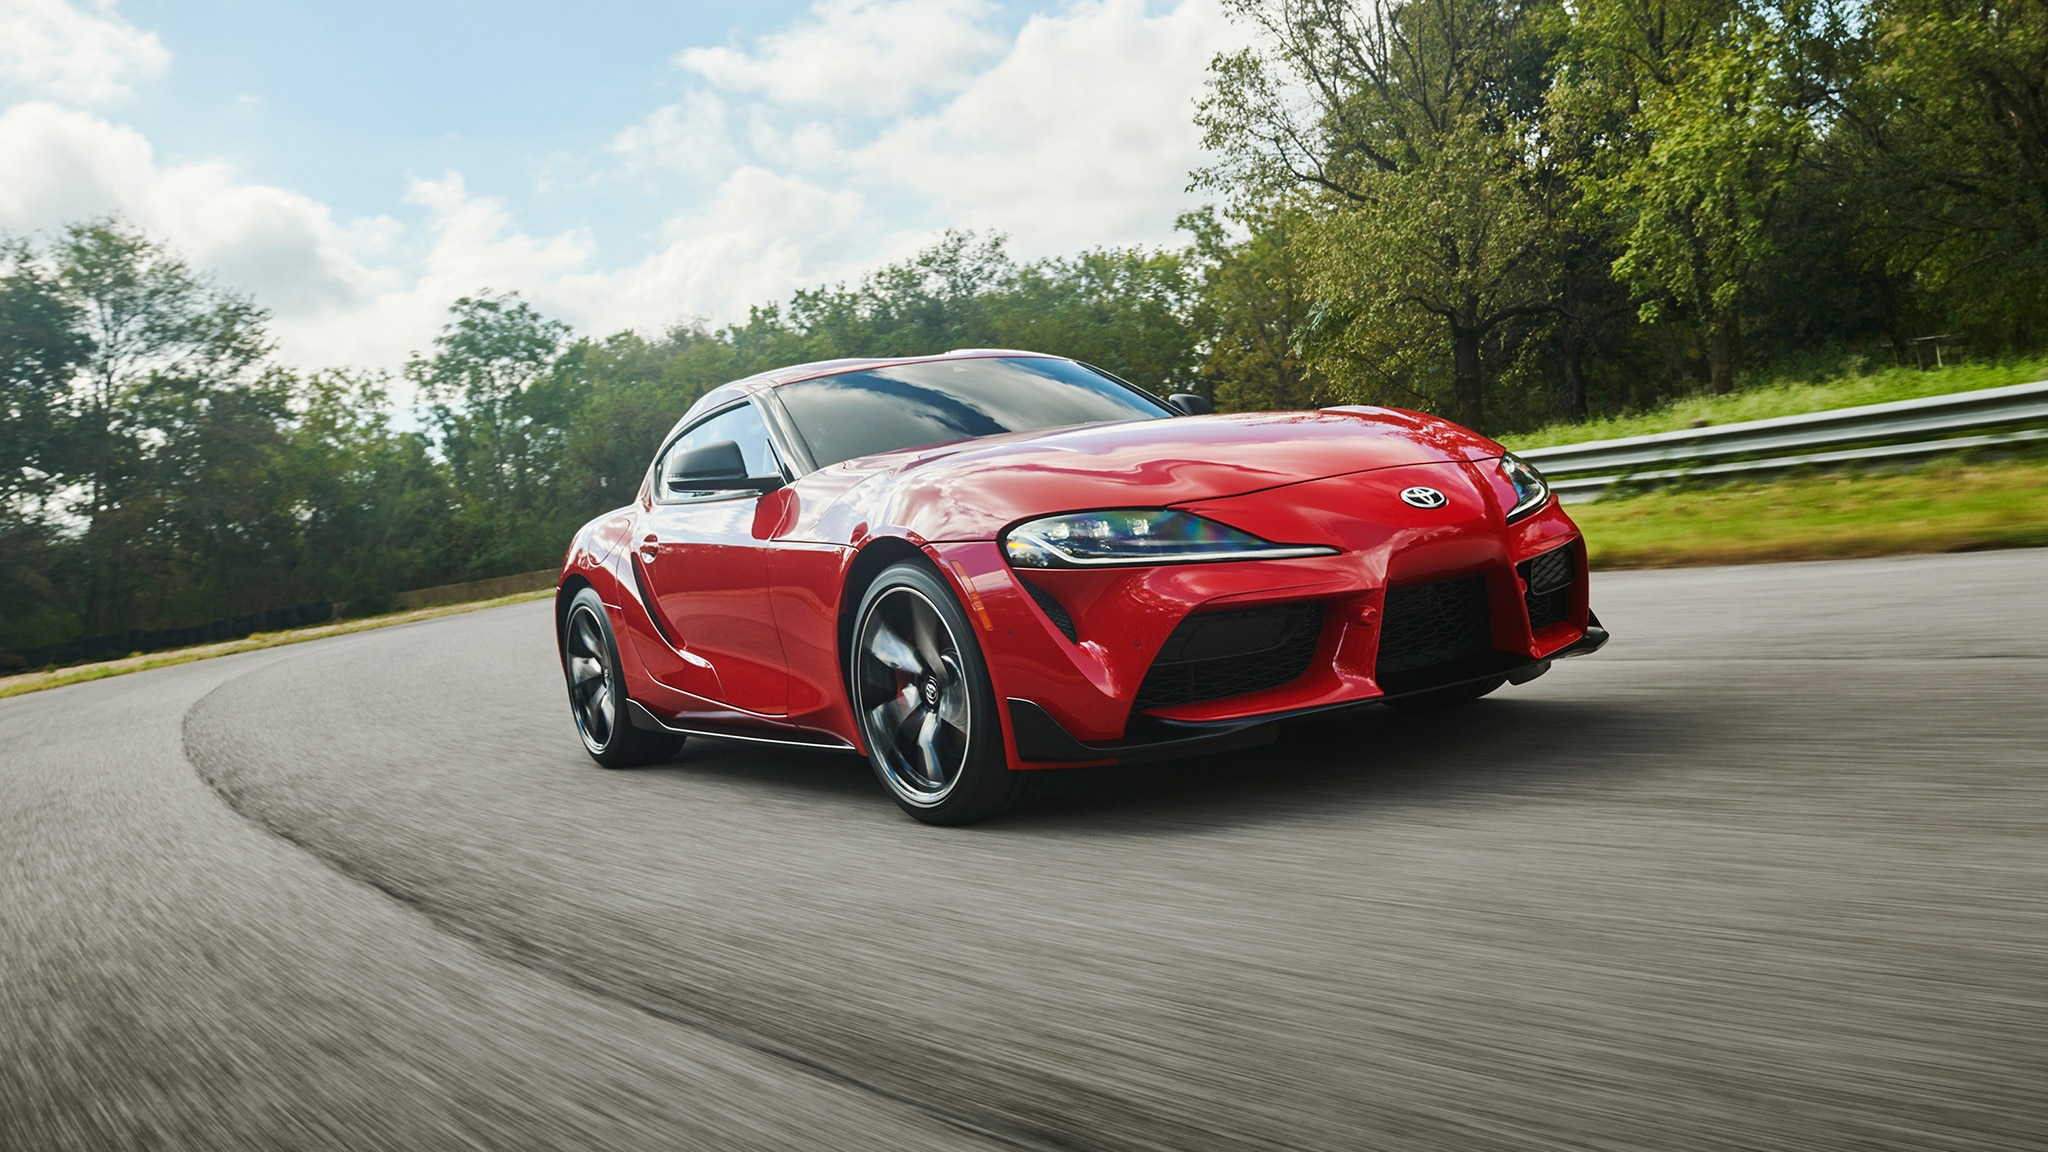 2020 Toyota Supra Official Info: Everything You Want to Know